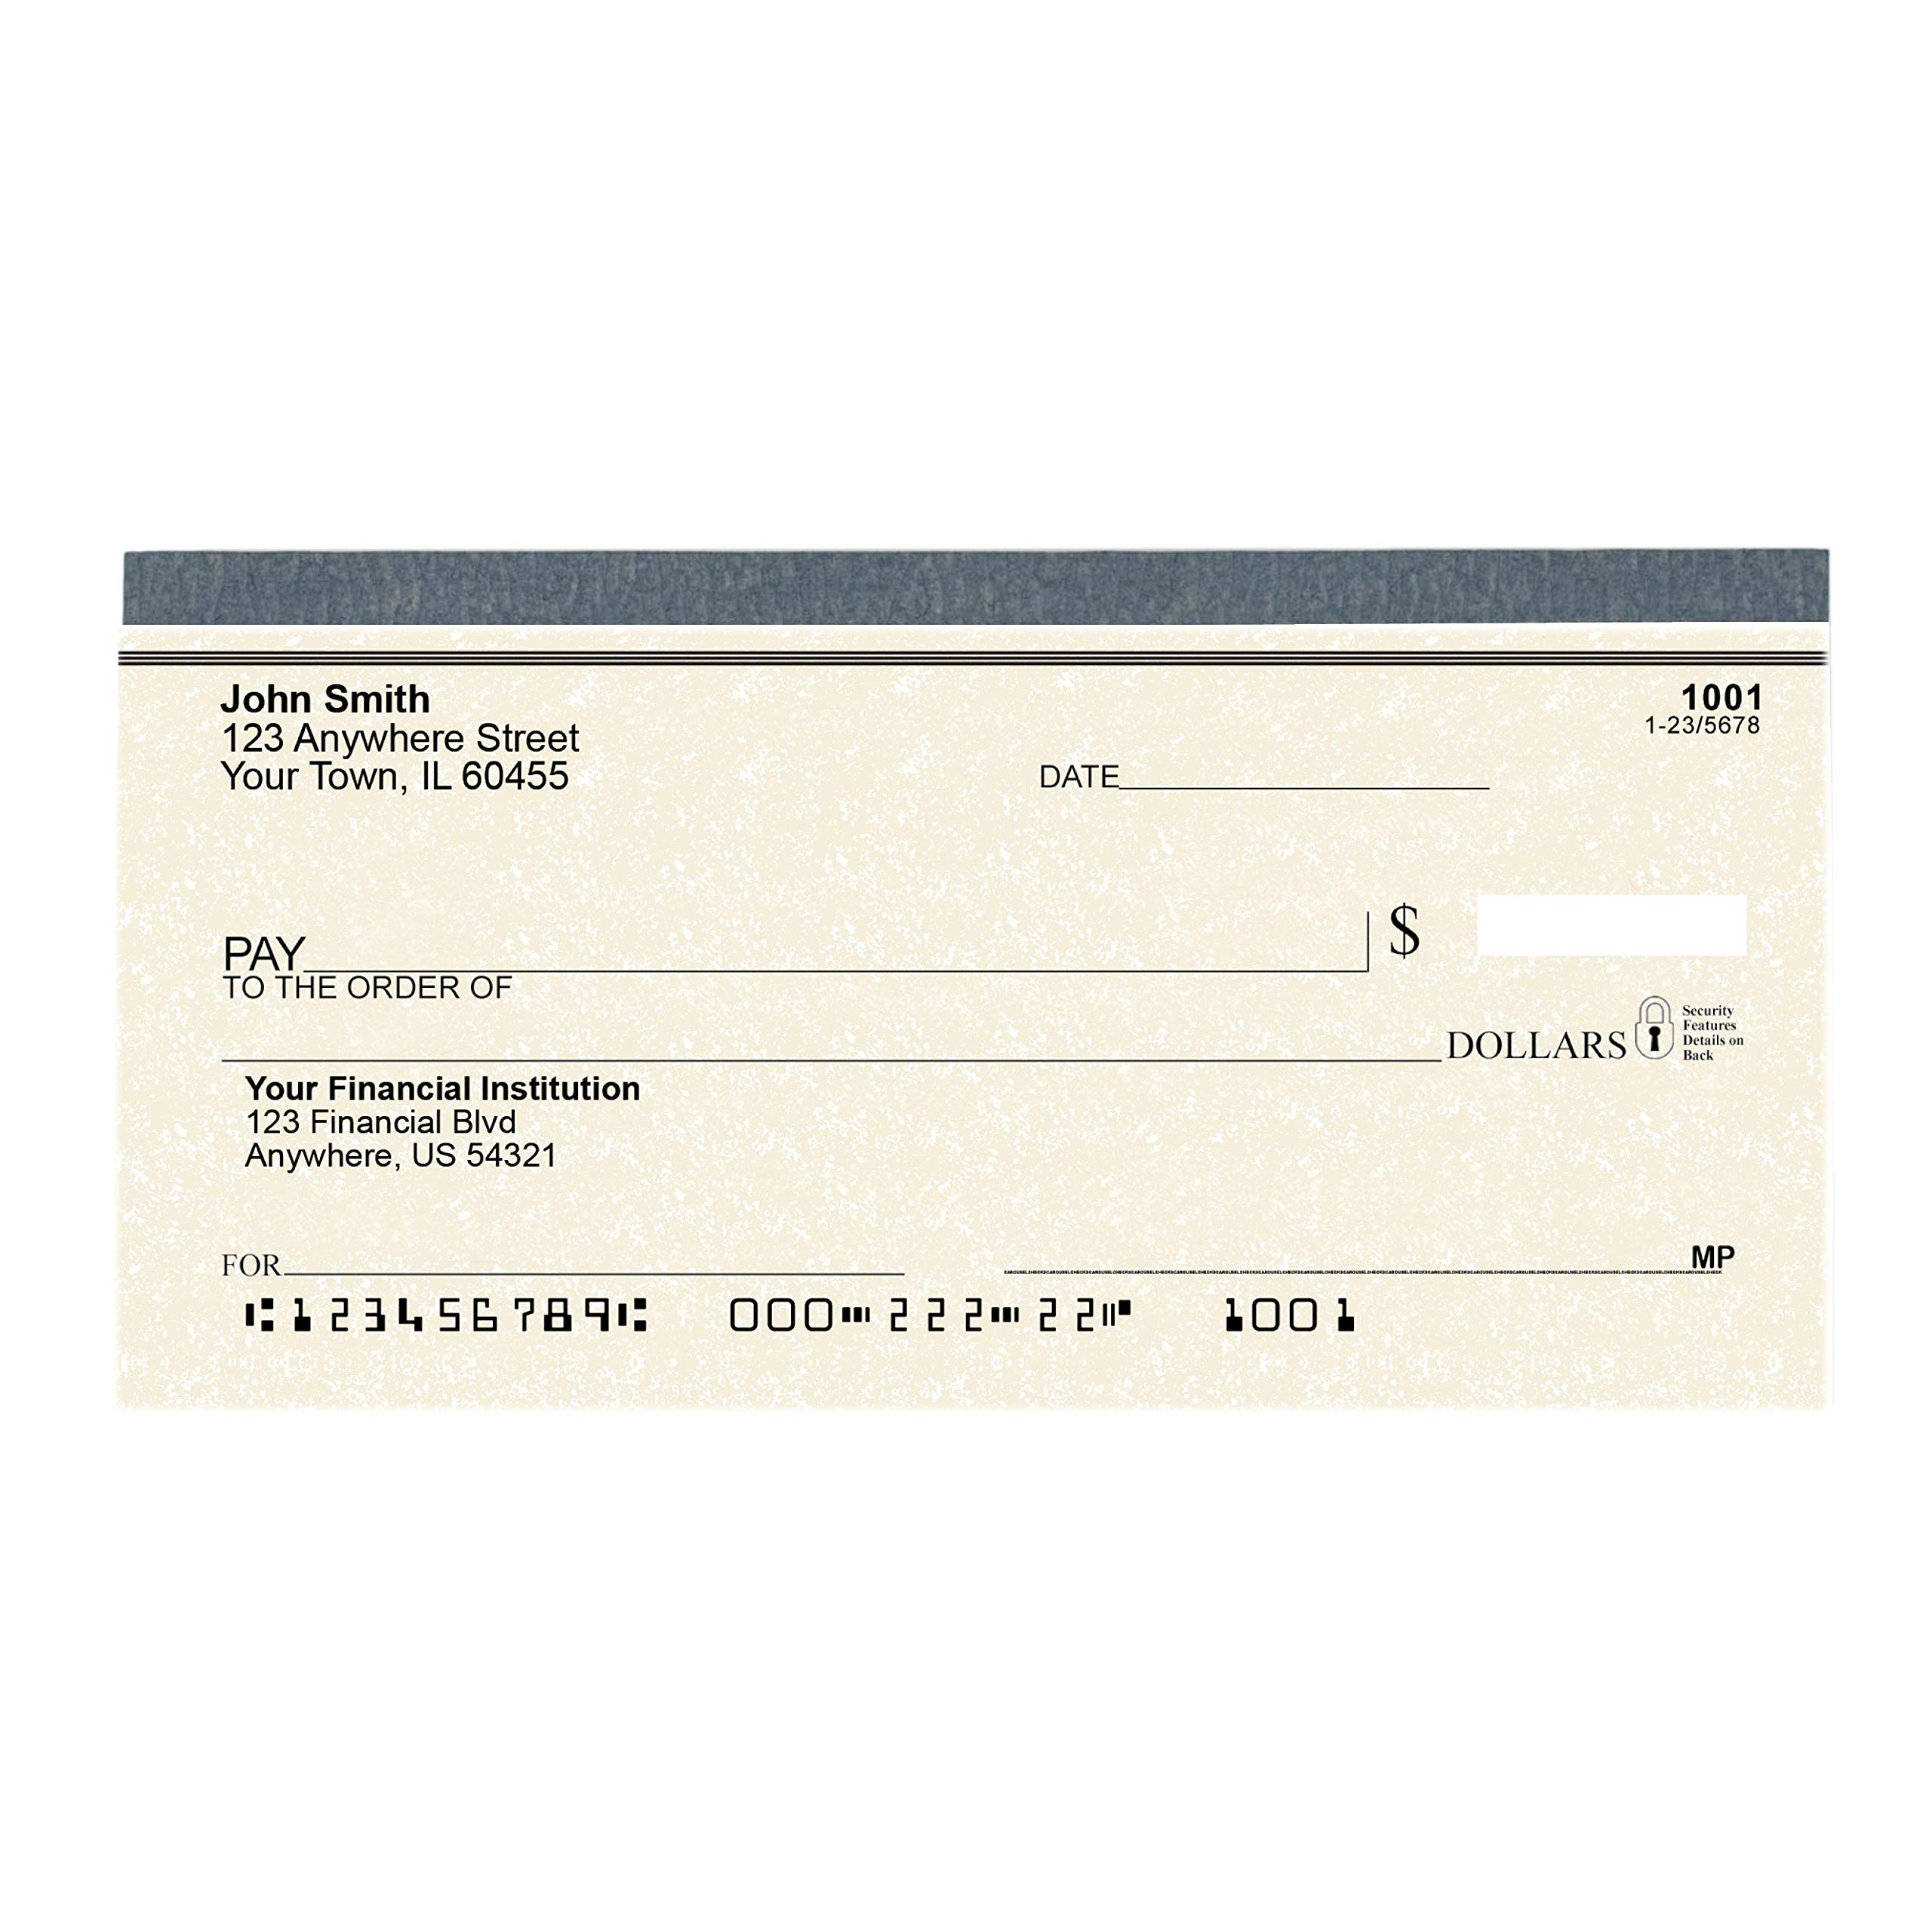 Parchment Personal Checks - Bank Checks Personalized and Printed for Your Checking Account - 4 Boxes of Duplicate Checks by Carousel Checks Inc.